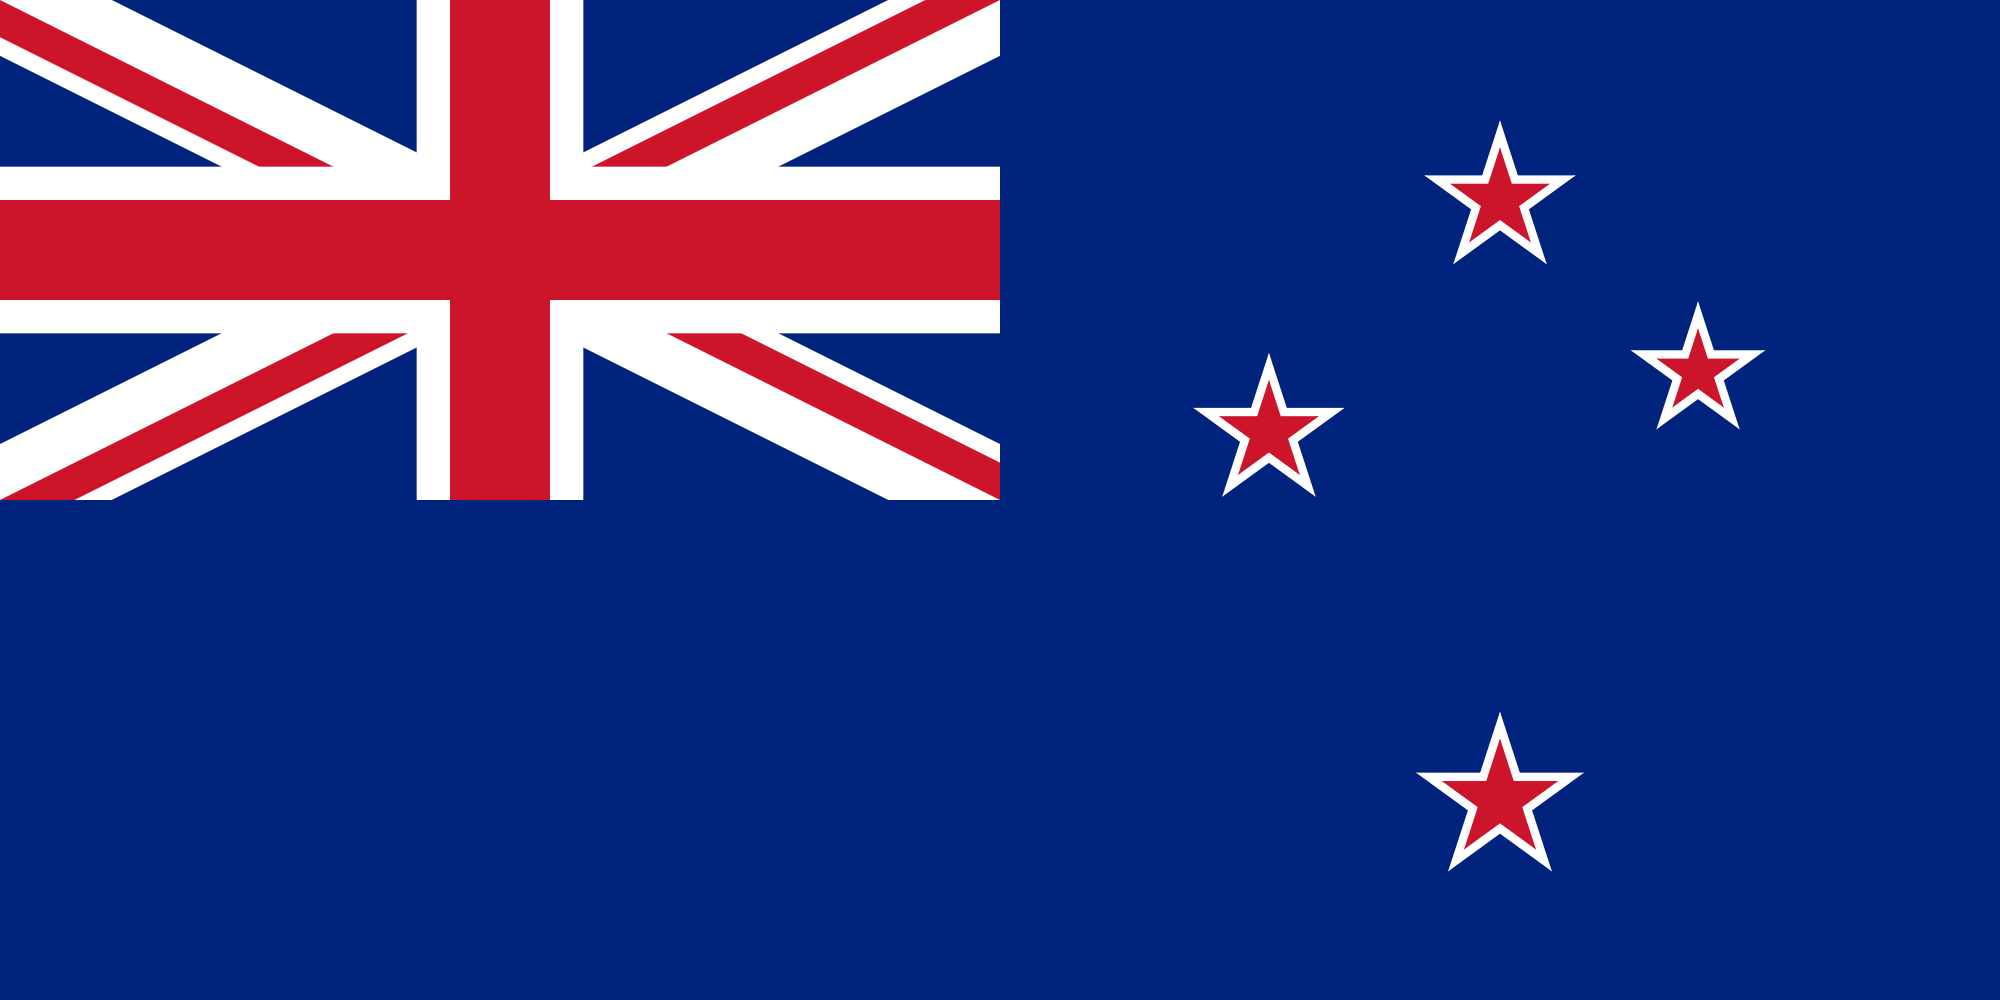 New Zealand flag Warren Buffett